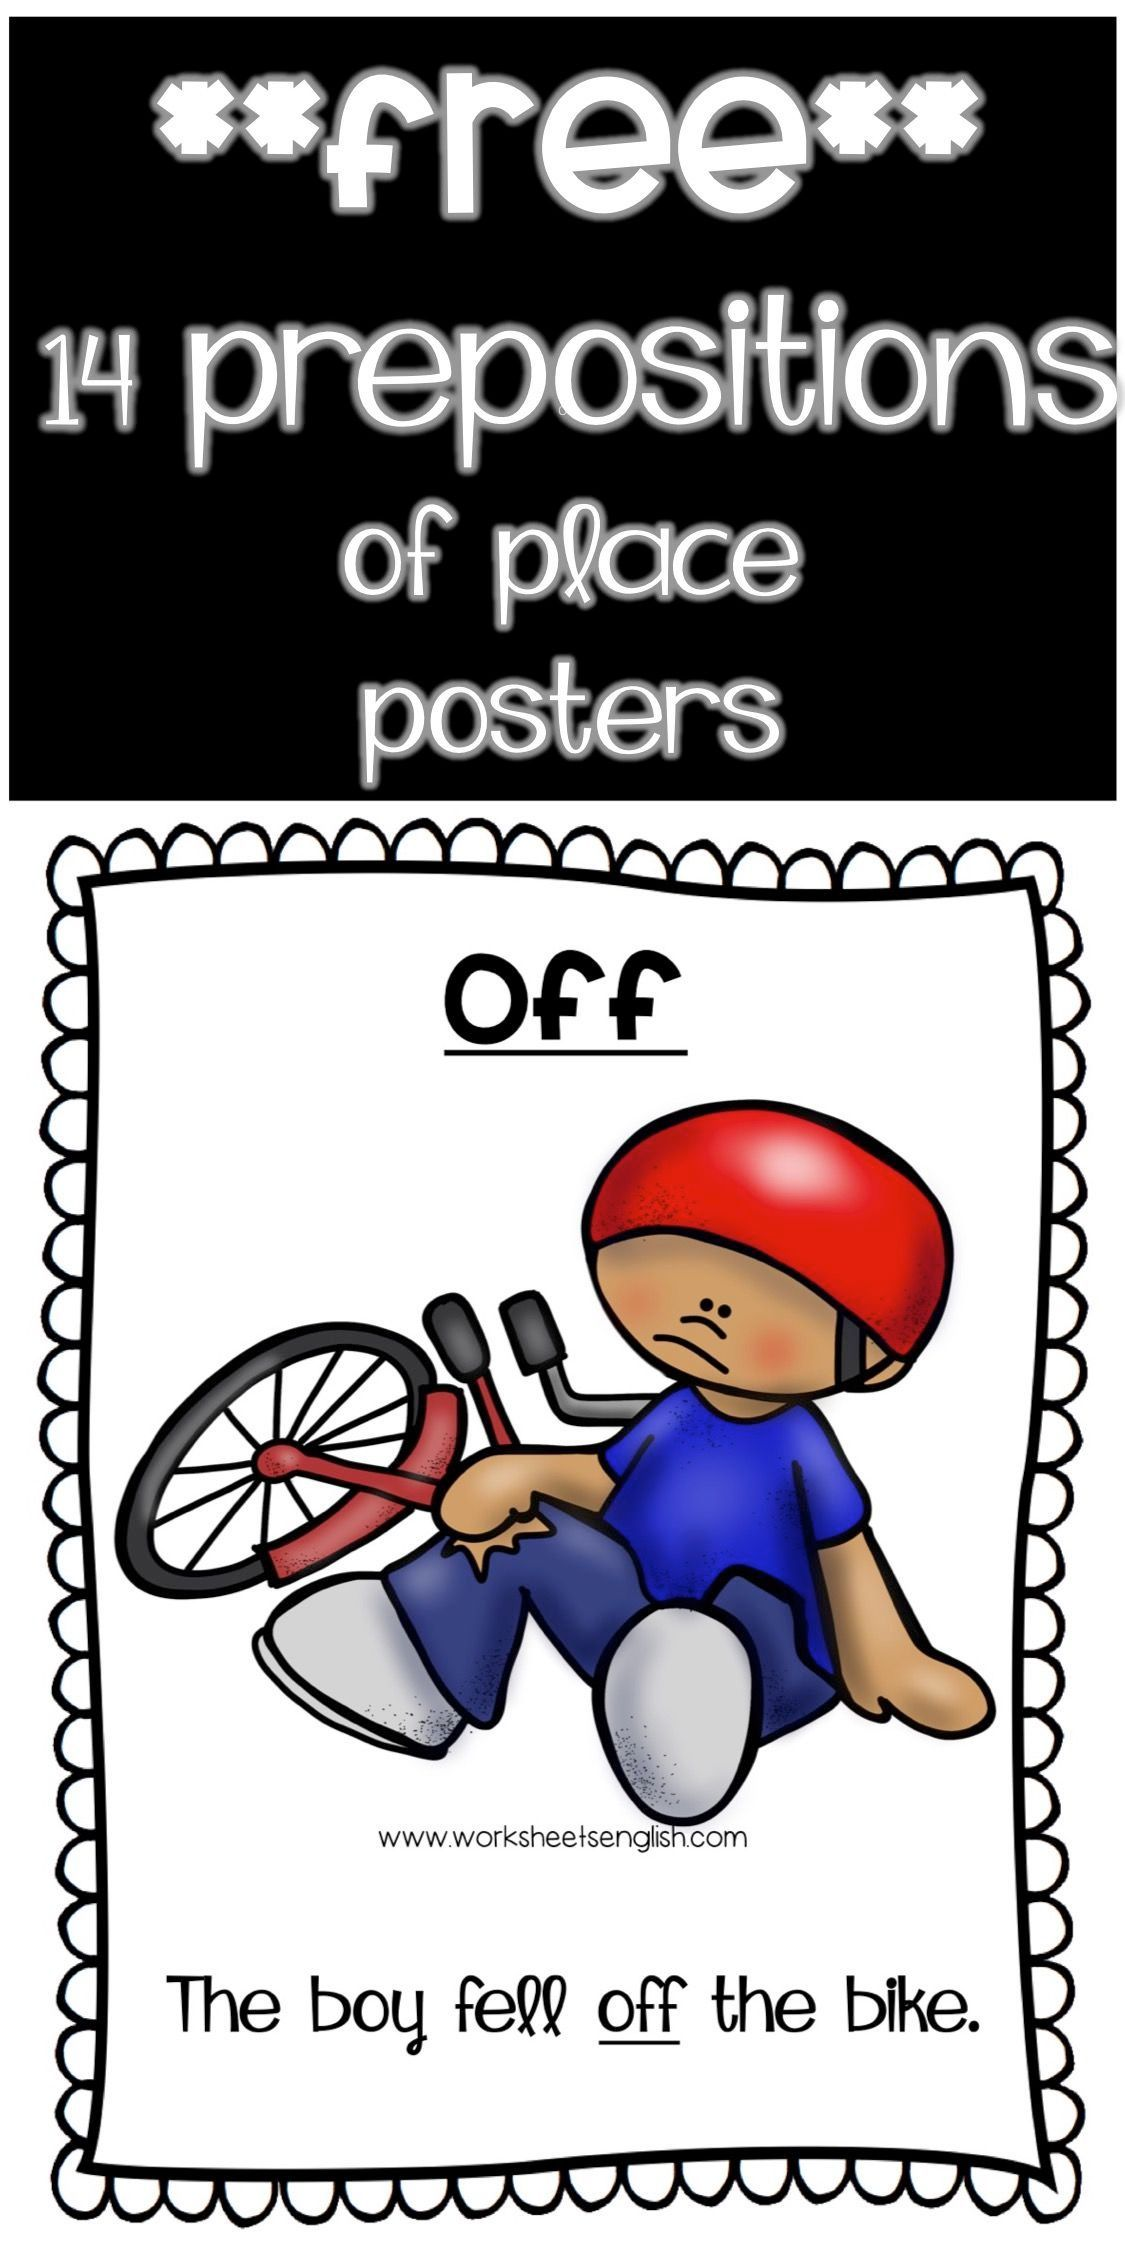 Prepositions Of Place Free Www Worksheetsenglish Com Prepositions Helping Kids Flashcards [ 2249 x 1125 Pixel ]